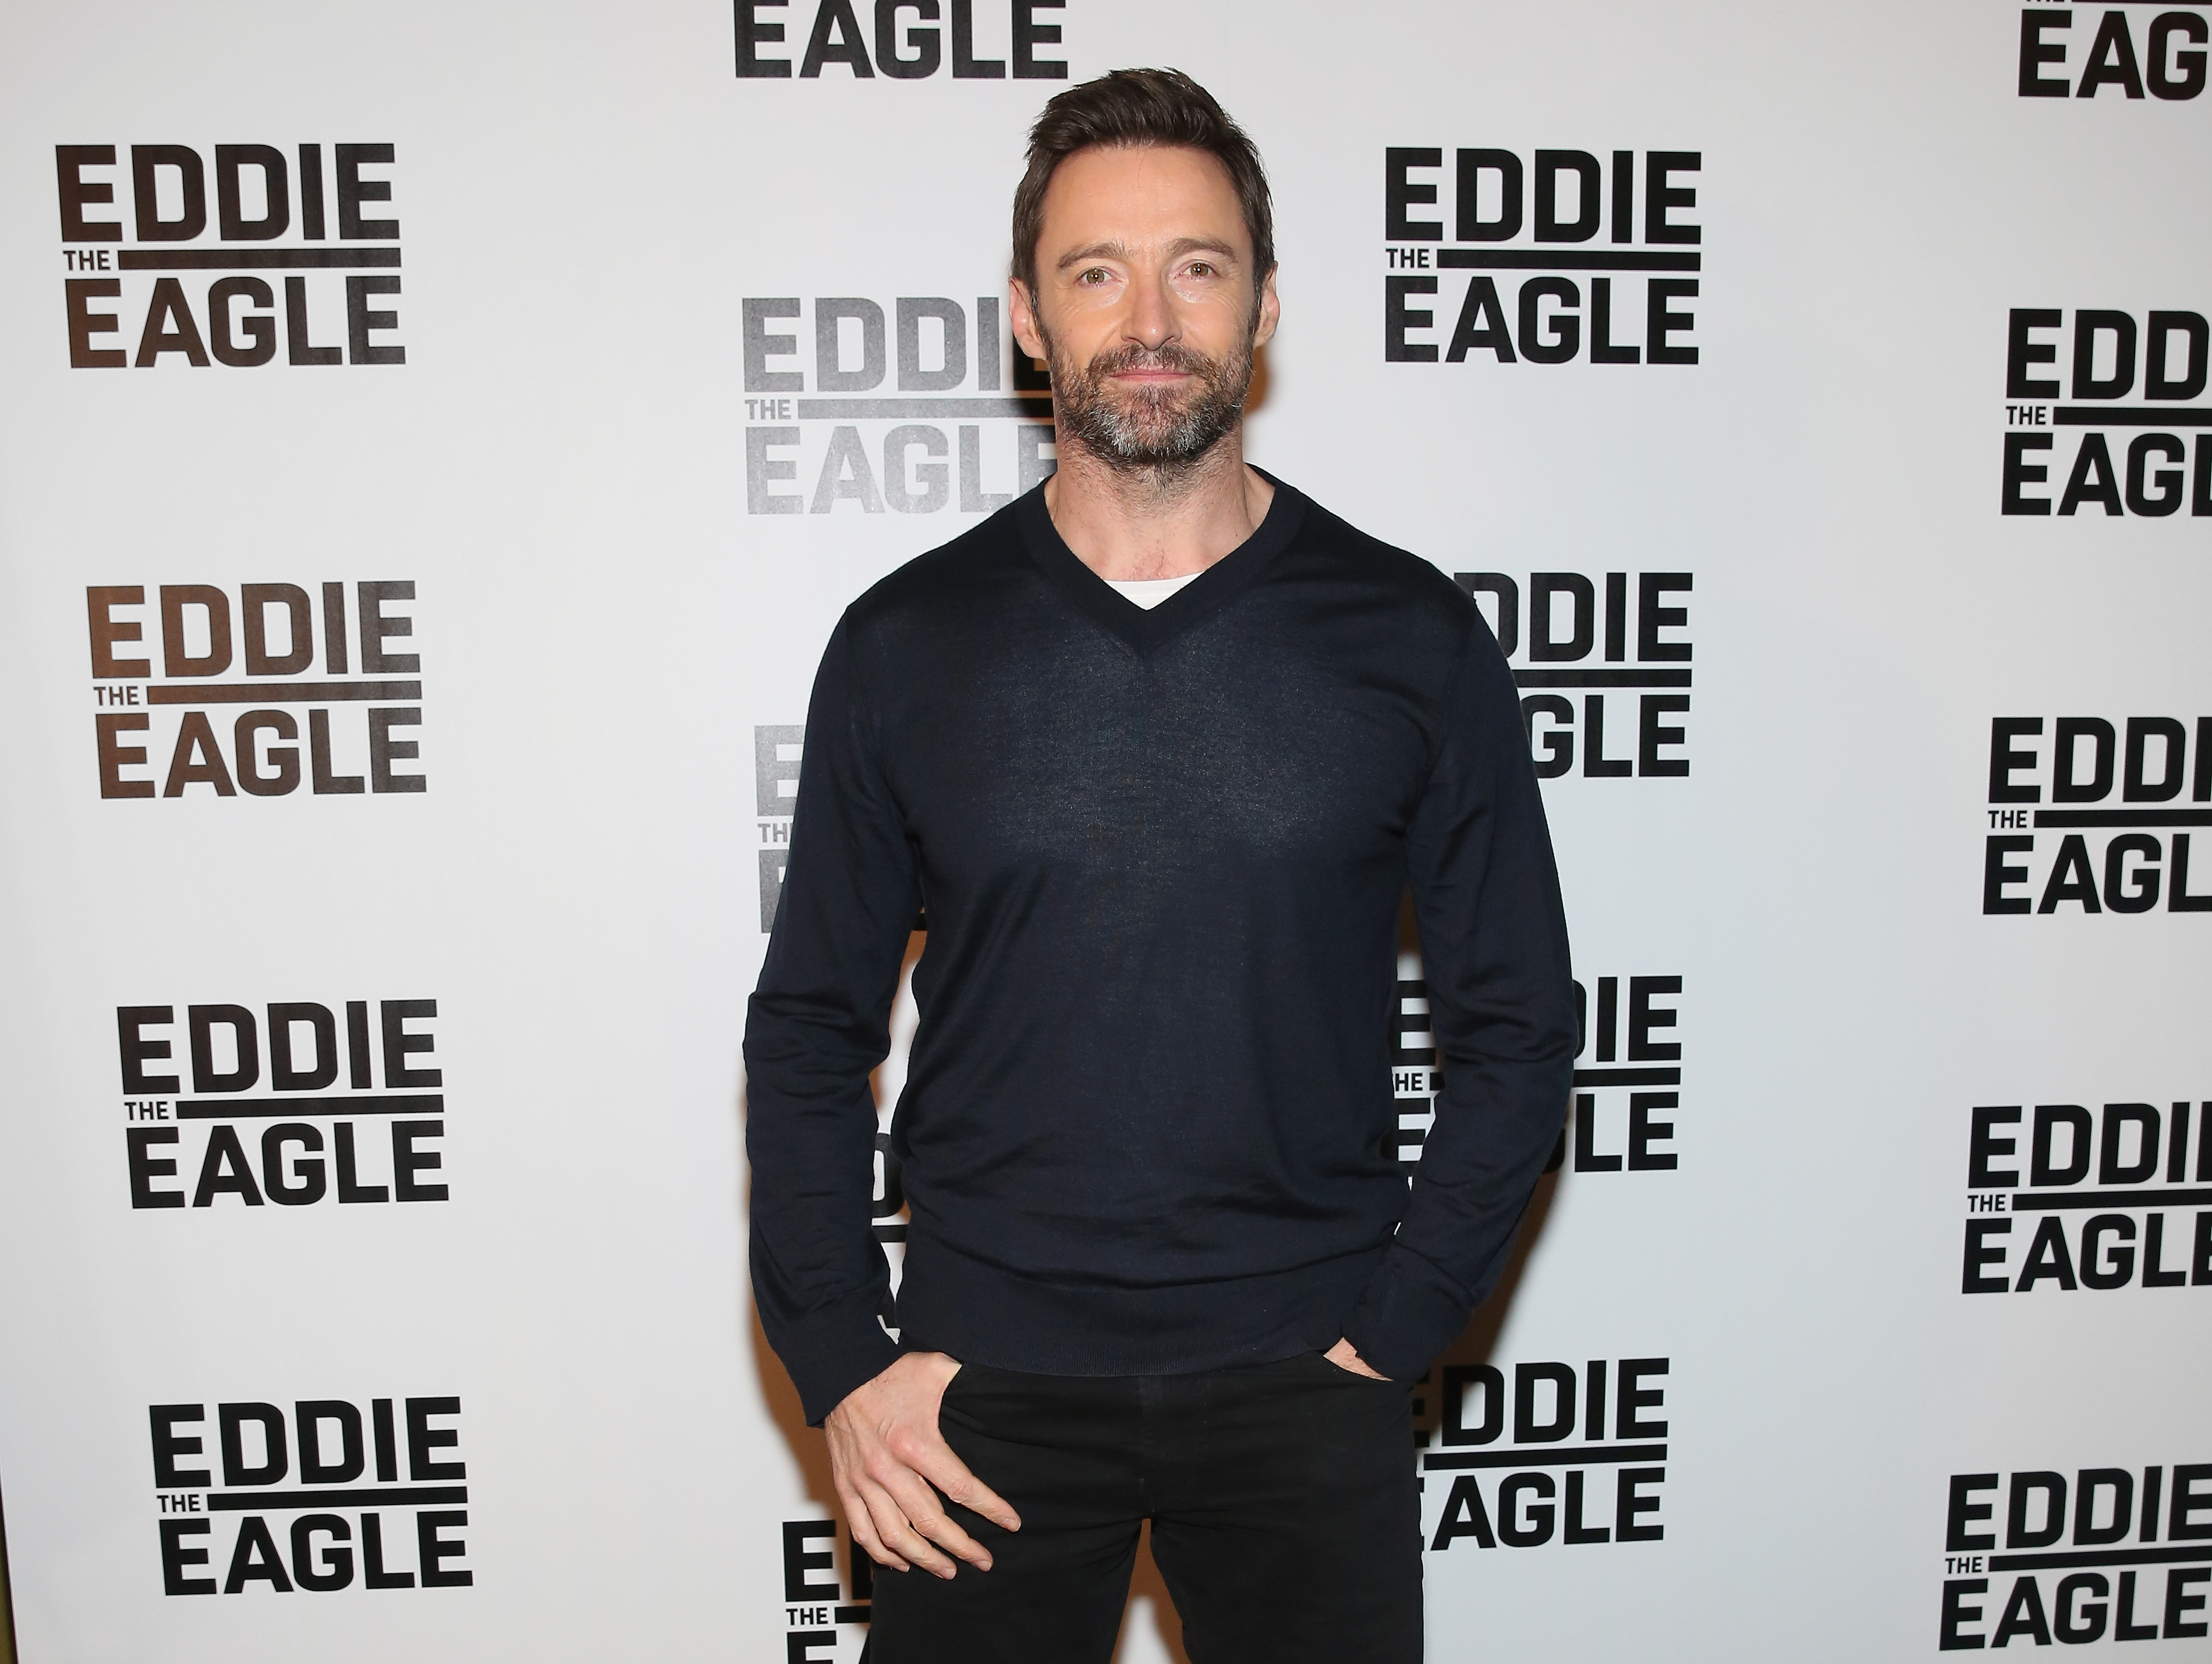 Hugh Jackman attends the  Eddie The Eagle  Screening at Landmark Sunshine Theater on February 2, 2016 in New York City.